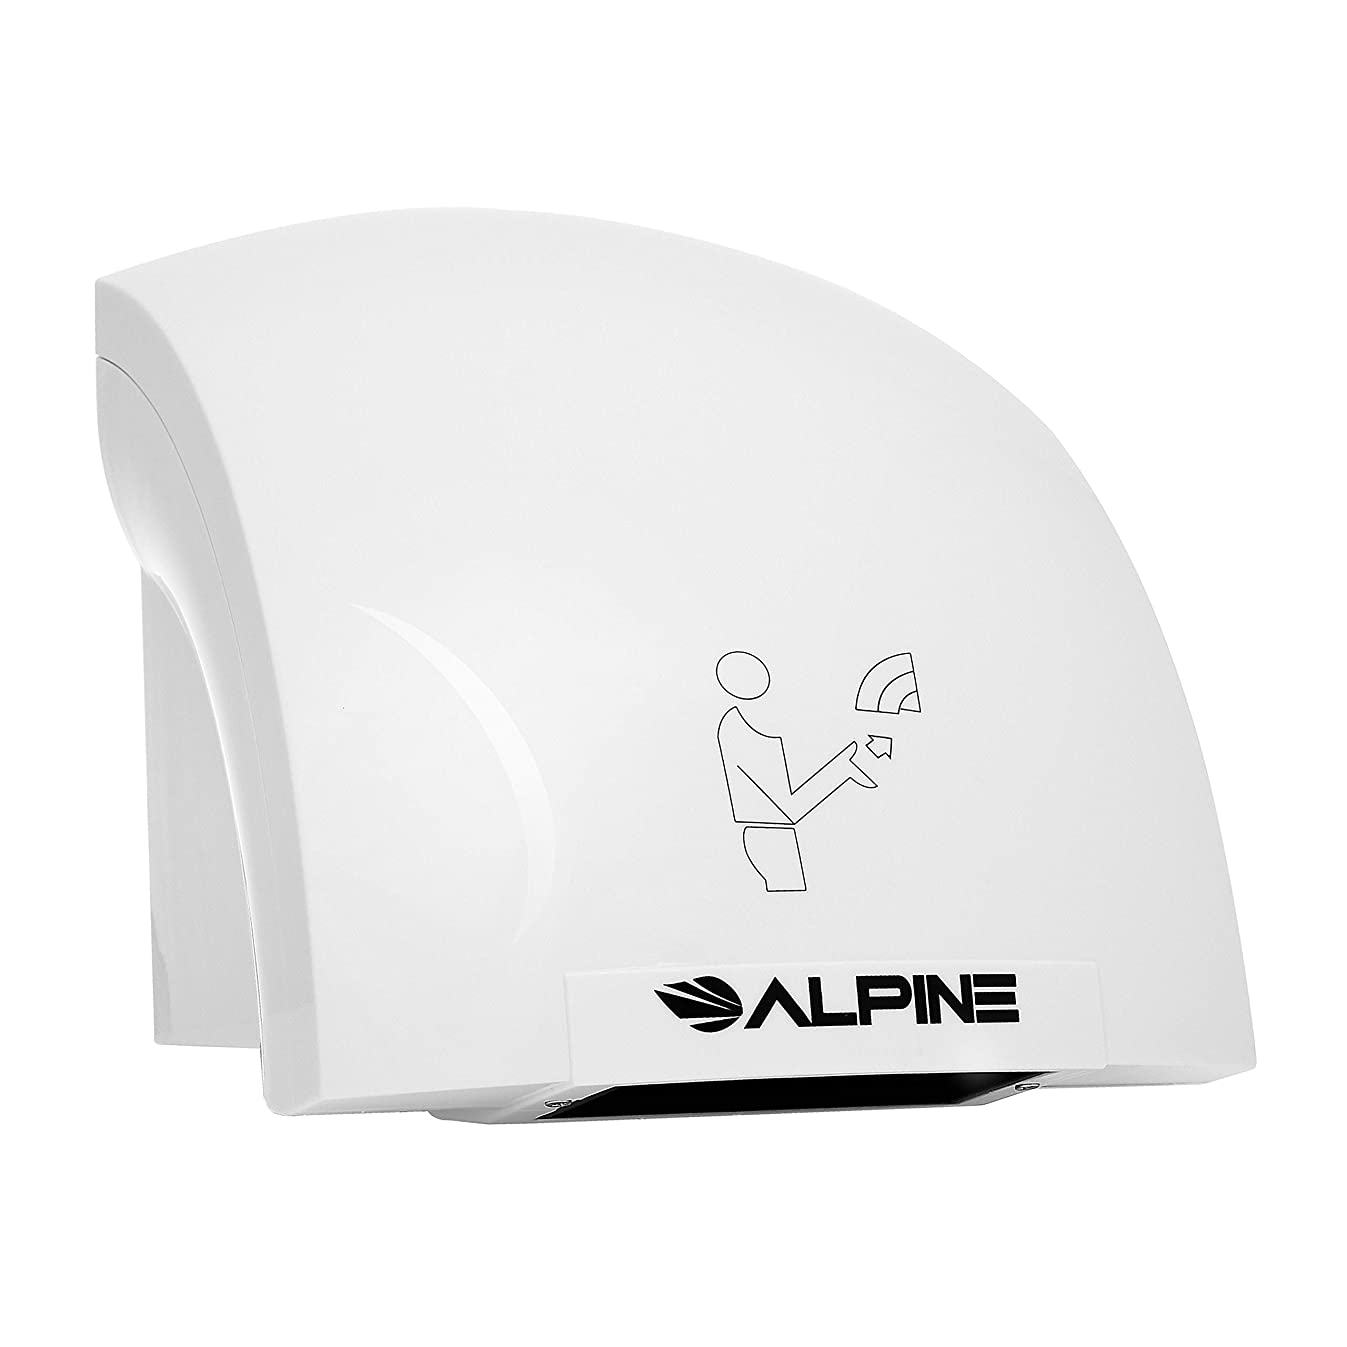 Alpine Hazel Automatic Hand Dryer | ABS Polycarbonate Hands Drying Device | Ultra-Quiet High Speed Hot Air Hand Blower | No Touch Operation | Easy & Fast Installation | with Infrared Sensor